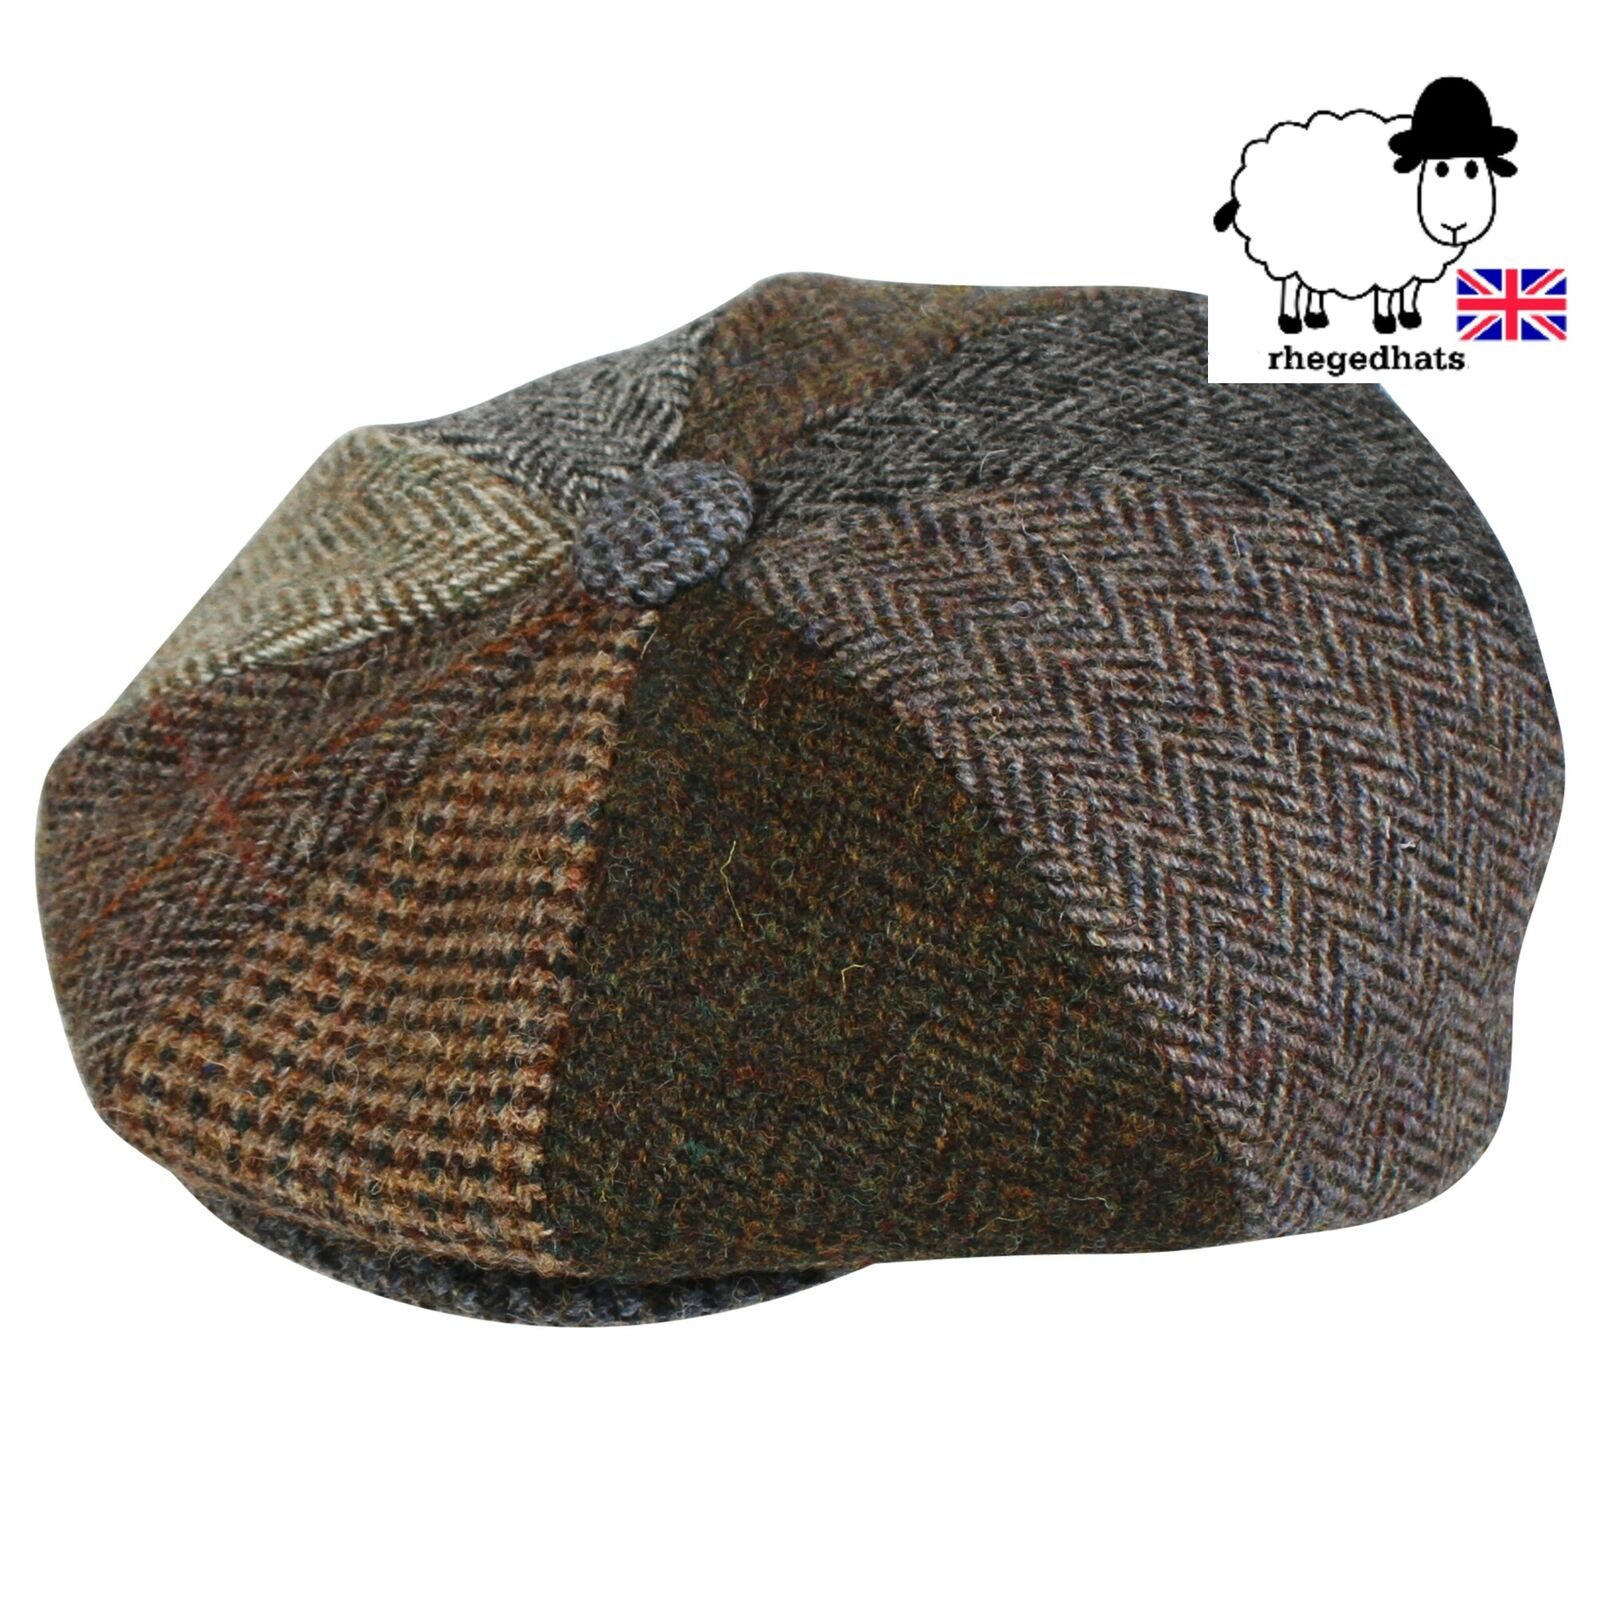 hatsontop (Rhegedhats.co.uk)